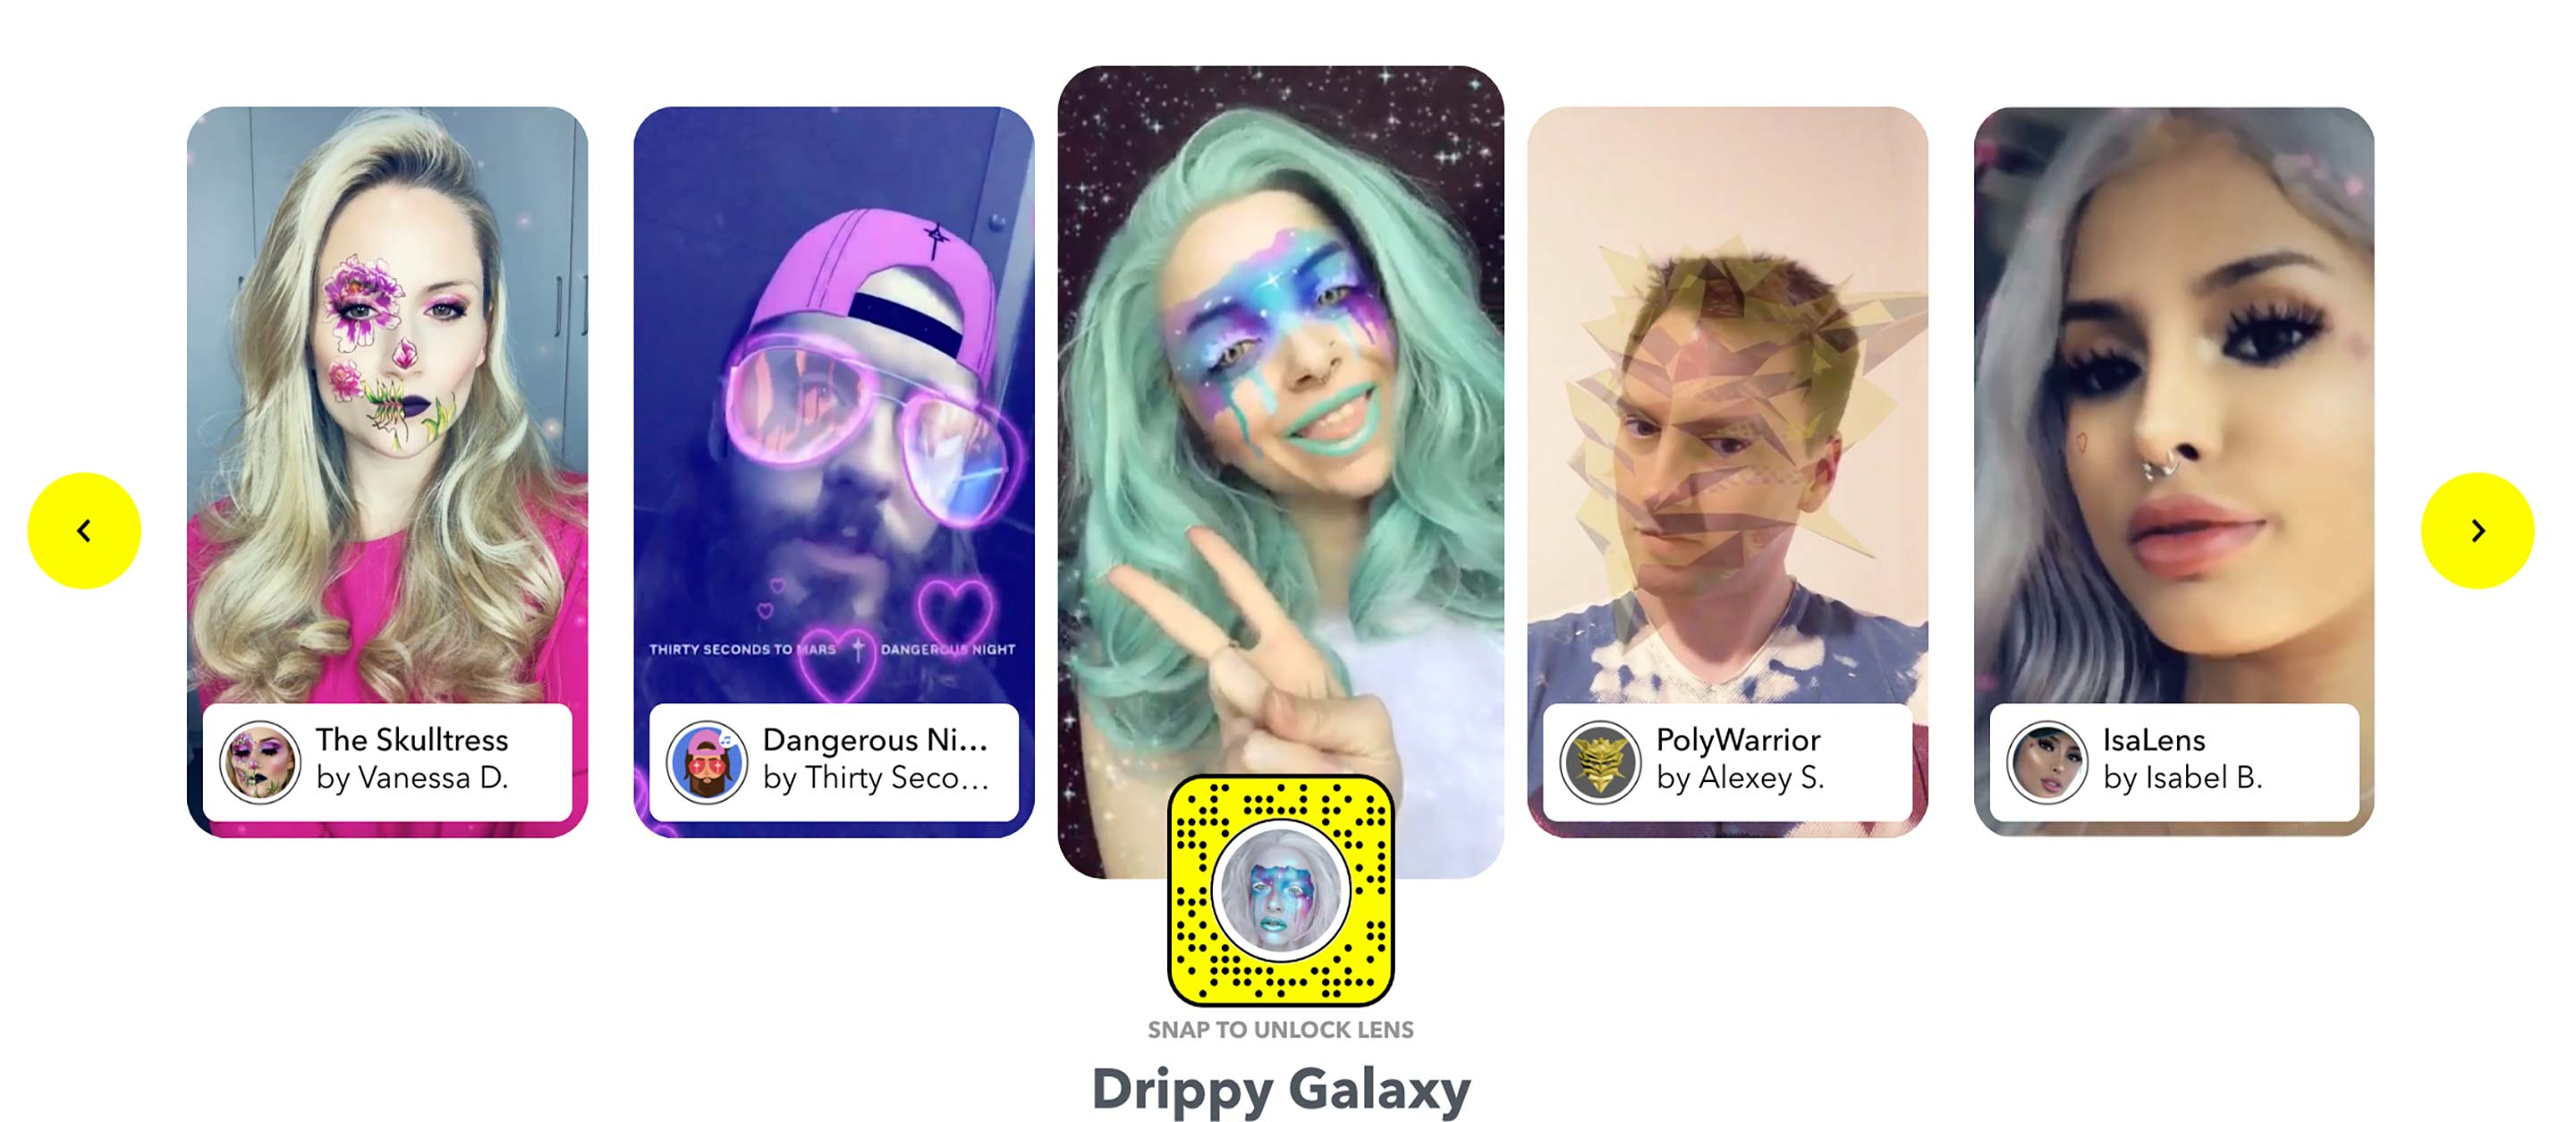 Examples of Snapchat's new Lens features.